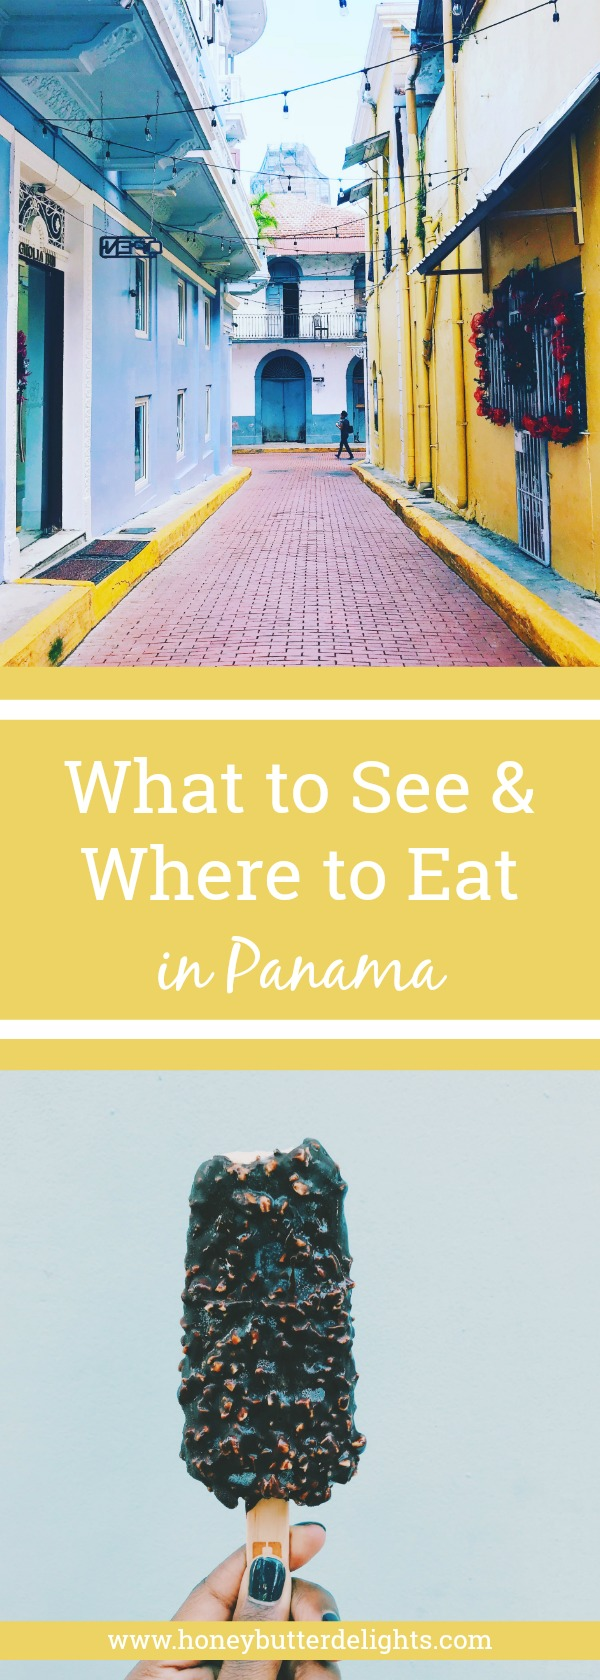 What to See and Where to Eat in Panama_long pin